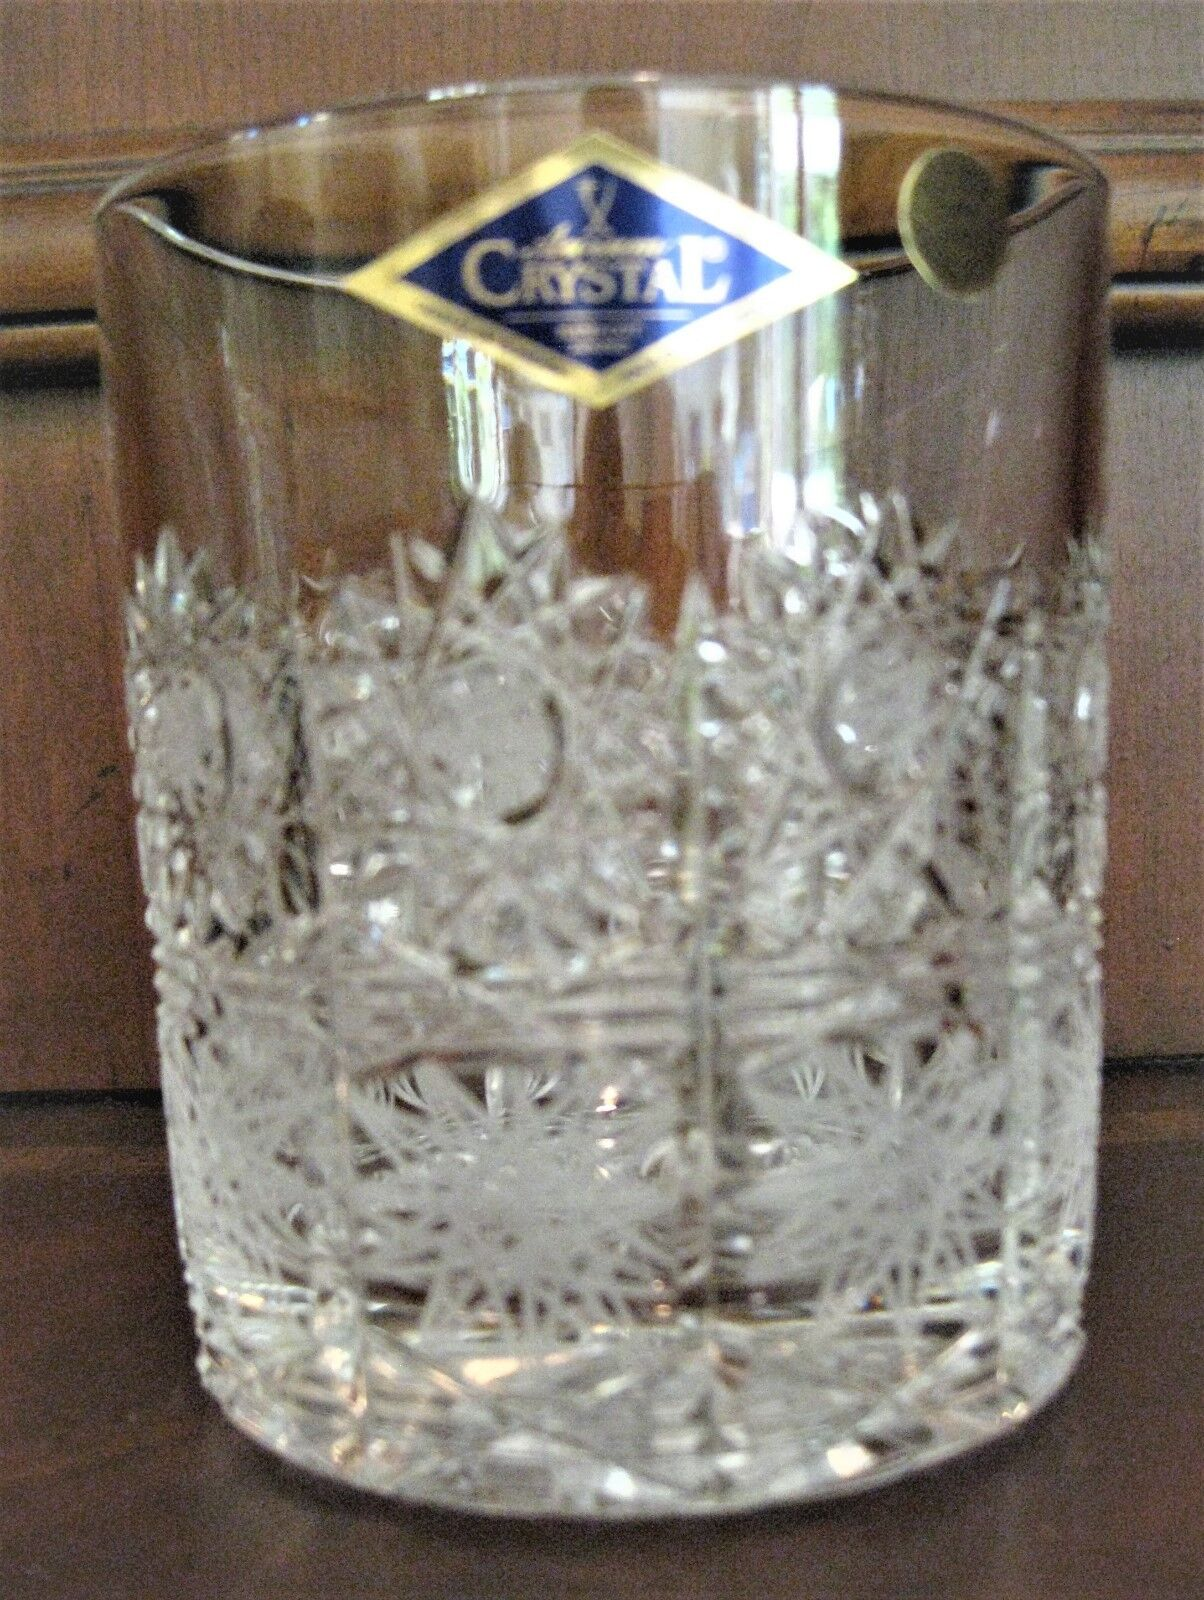 Bohemia Crystal Hand Cut set of 6 Tumble Glasses, Queen-lace Cut, Czech Republic